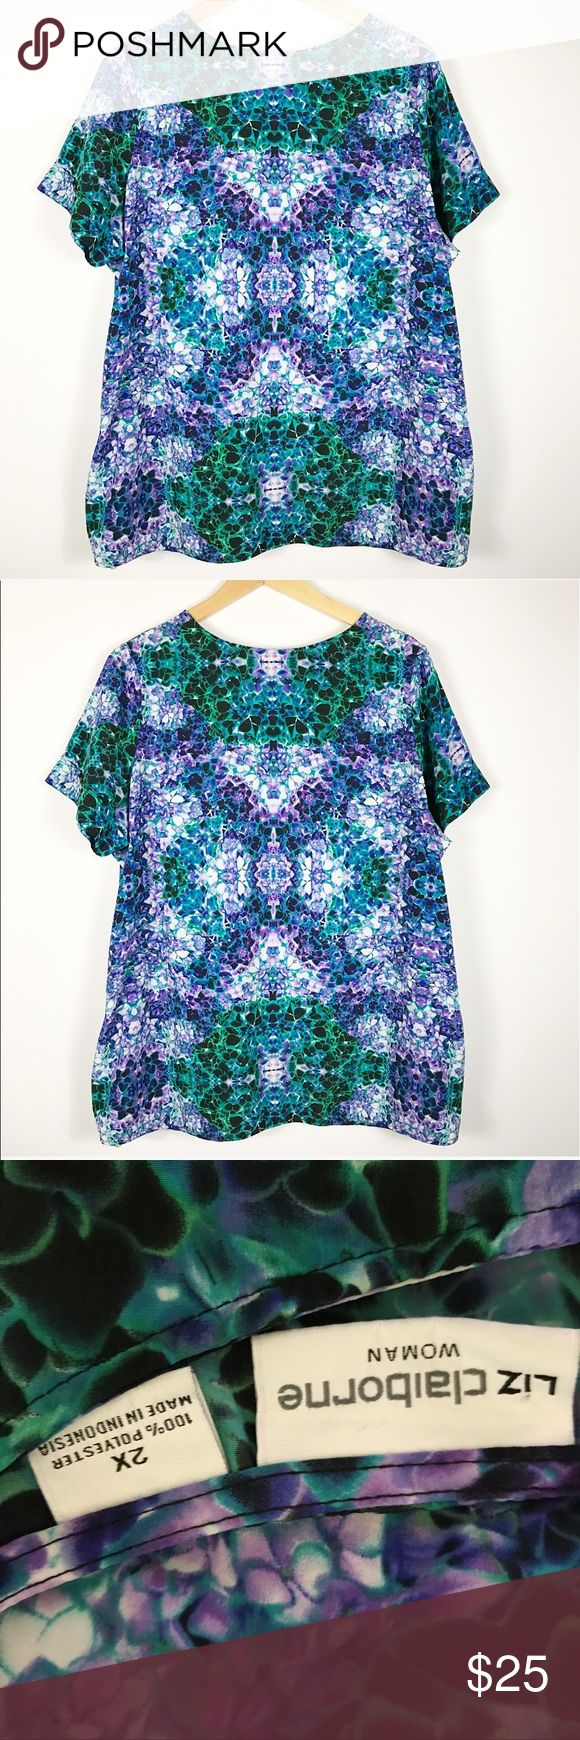 """3x plus size purple green mirror print keyhole tee 3x plus size purple green mirror print keyhole back tee. Perfect condition. Great with leggings! Lightweight! Measures approx 25.5""""b 26""""hip 5"""" slits on each side 30""""long laying flat. Liz Claiborne Tops Blouses"""